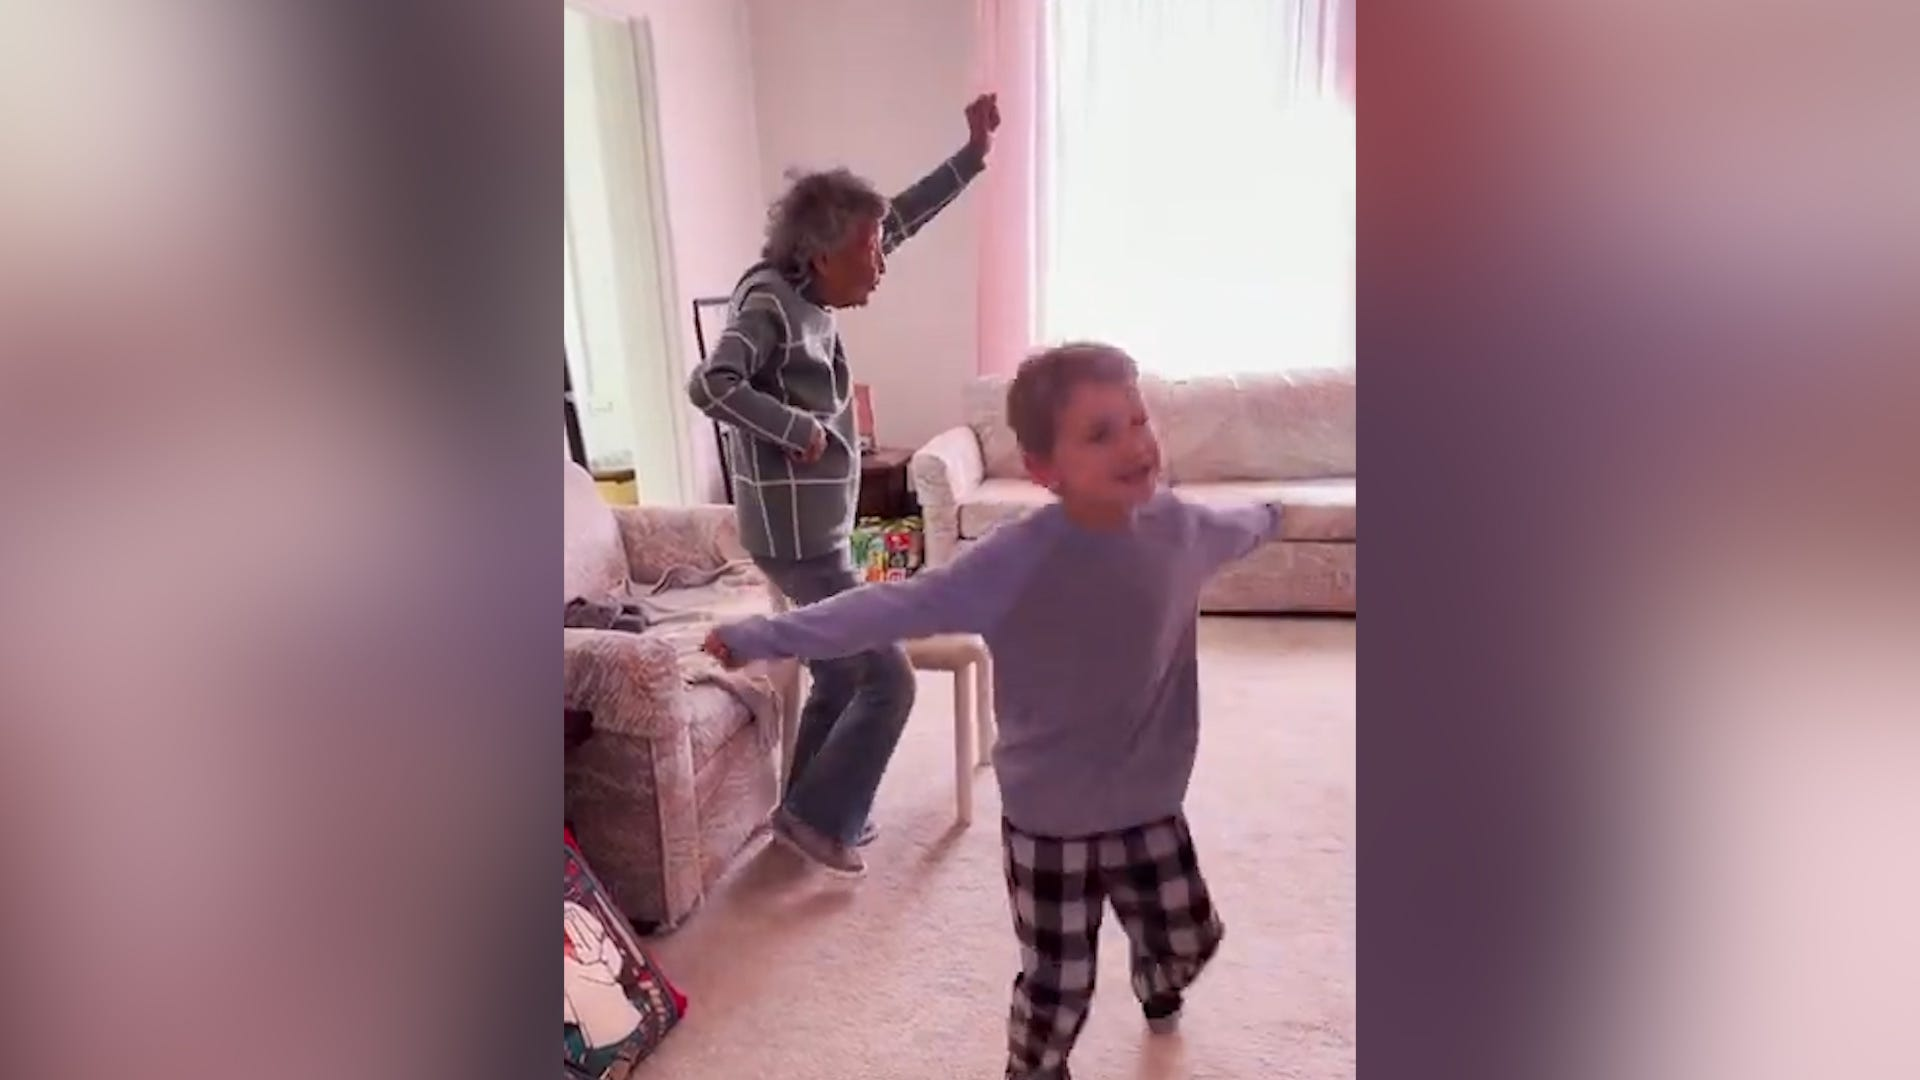 102-year-old joins great-grandson's gym class